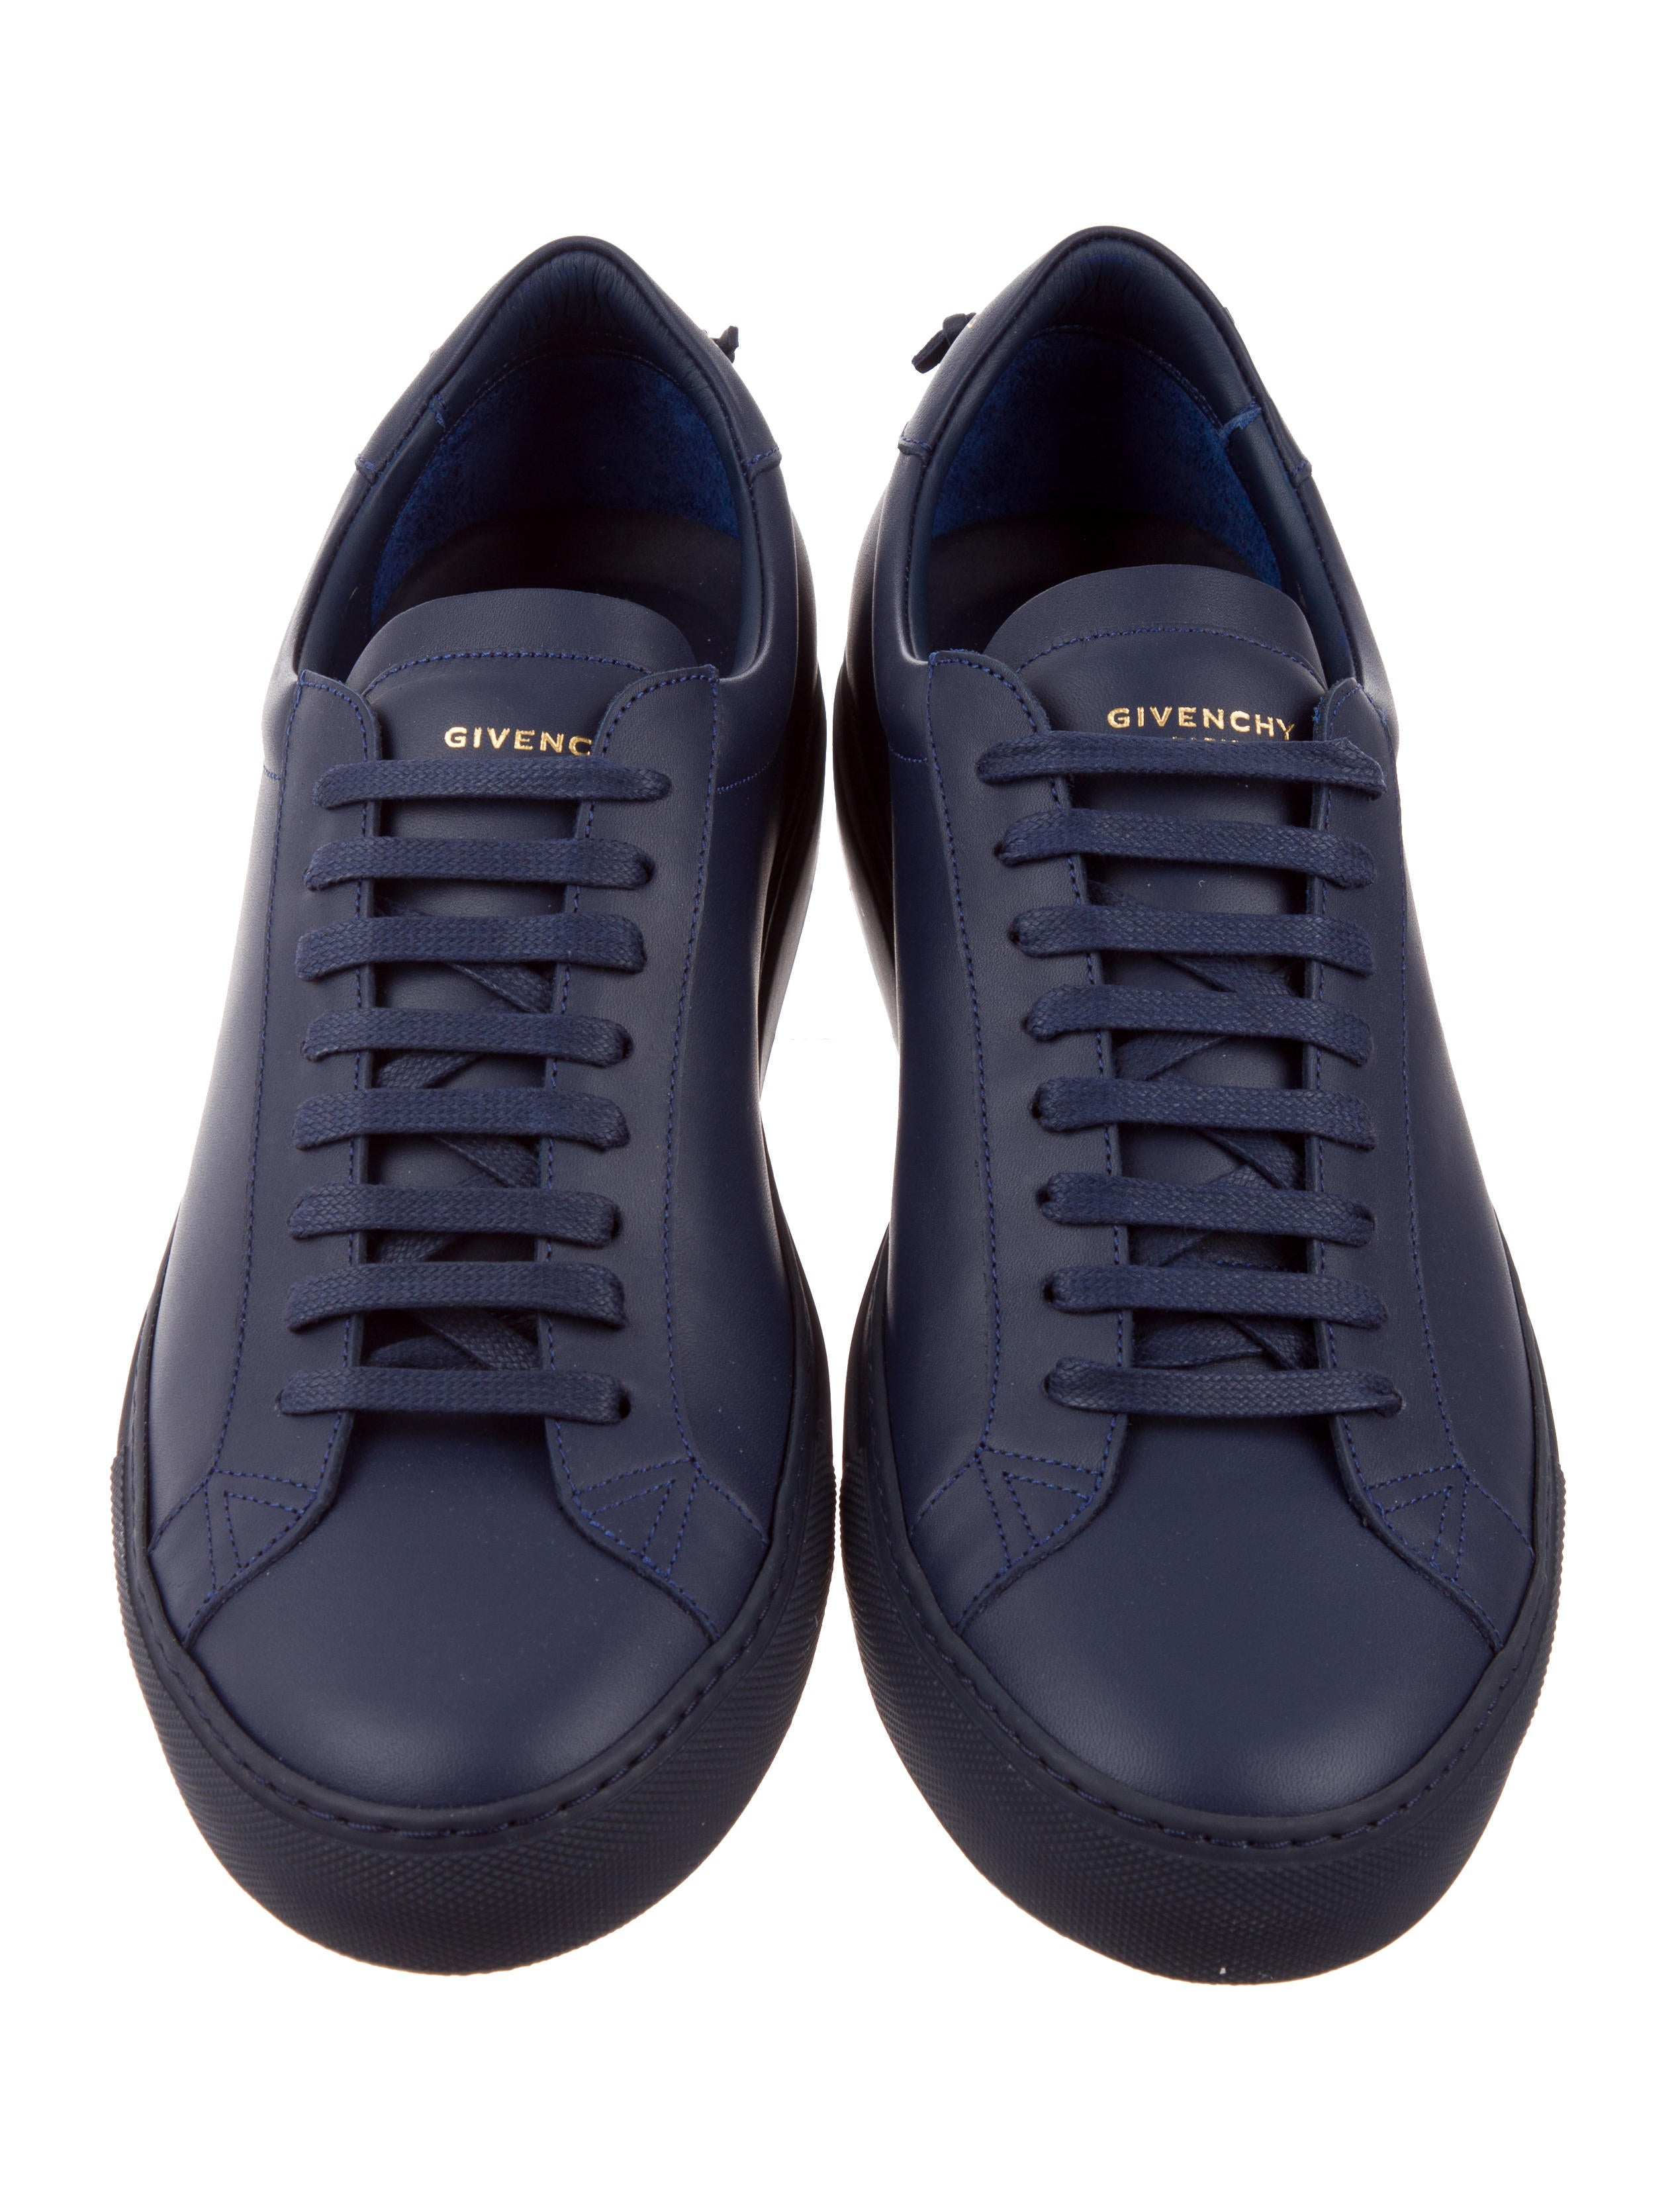 f6211e82aabf Givenchy Low Top Sneakers Sale